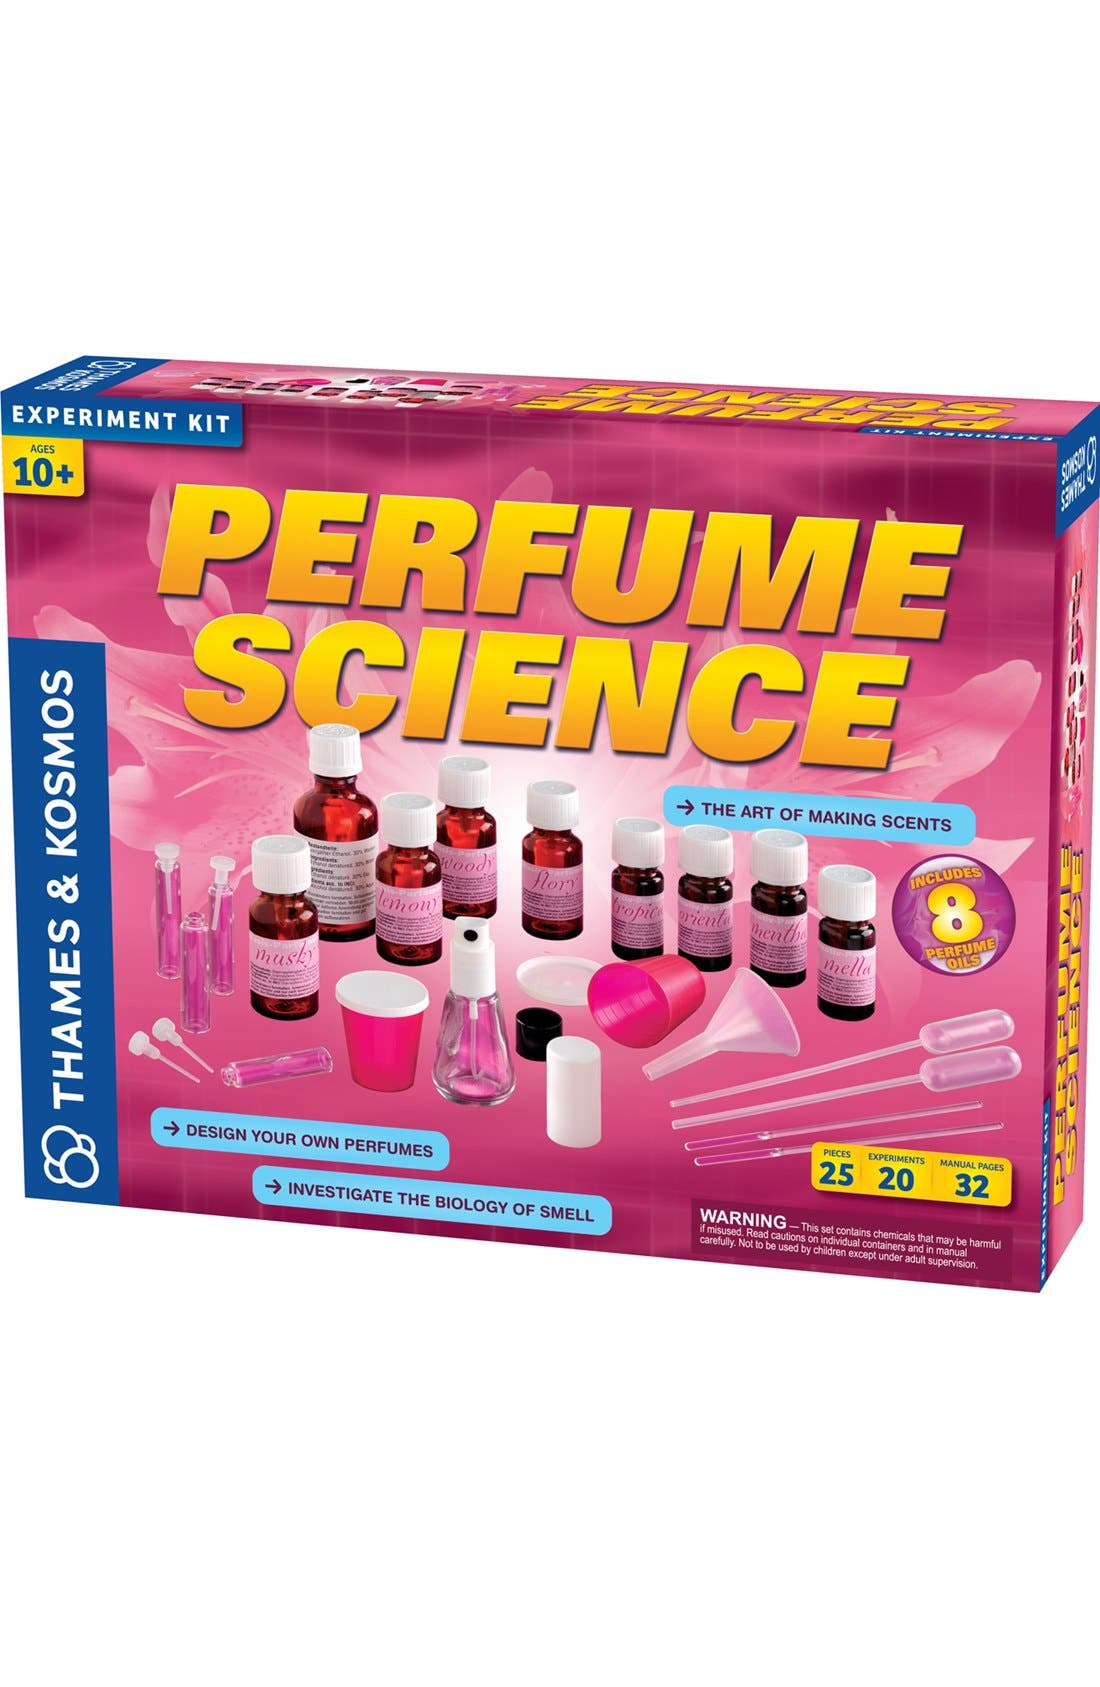 Perfume Science Kit,                             Main thumbnail 1, color,                             NONE